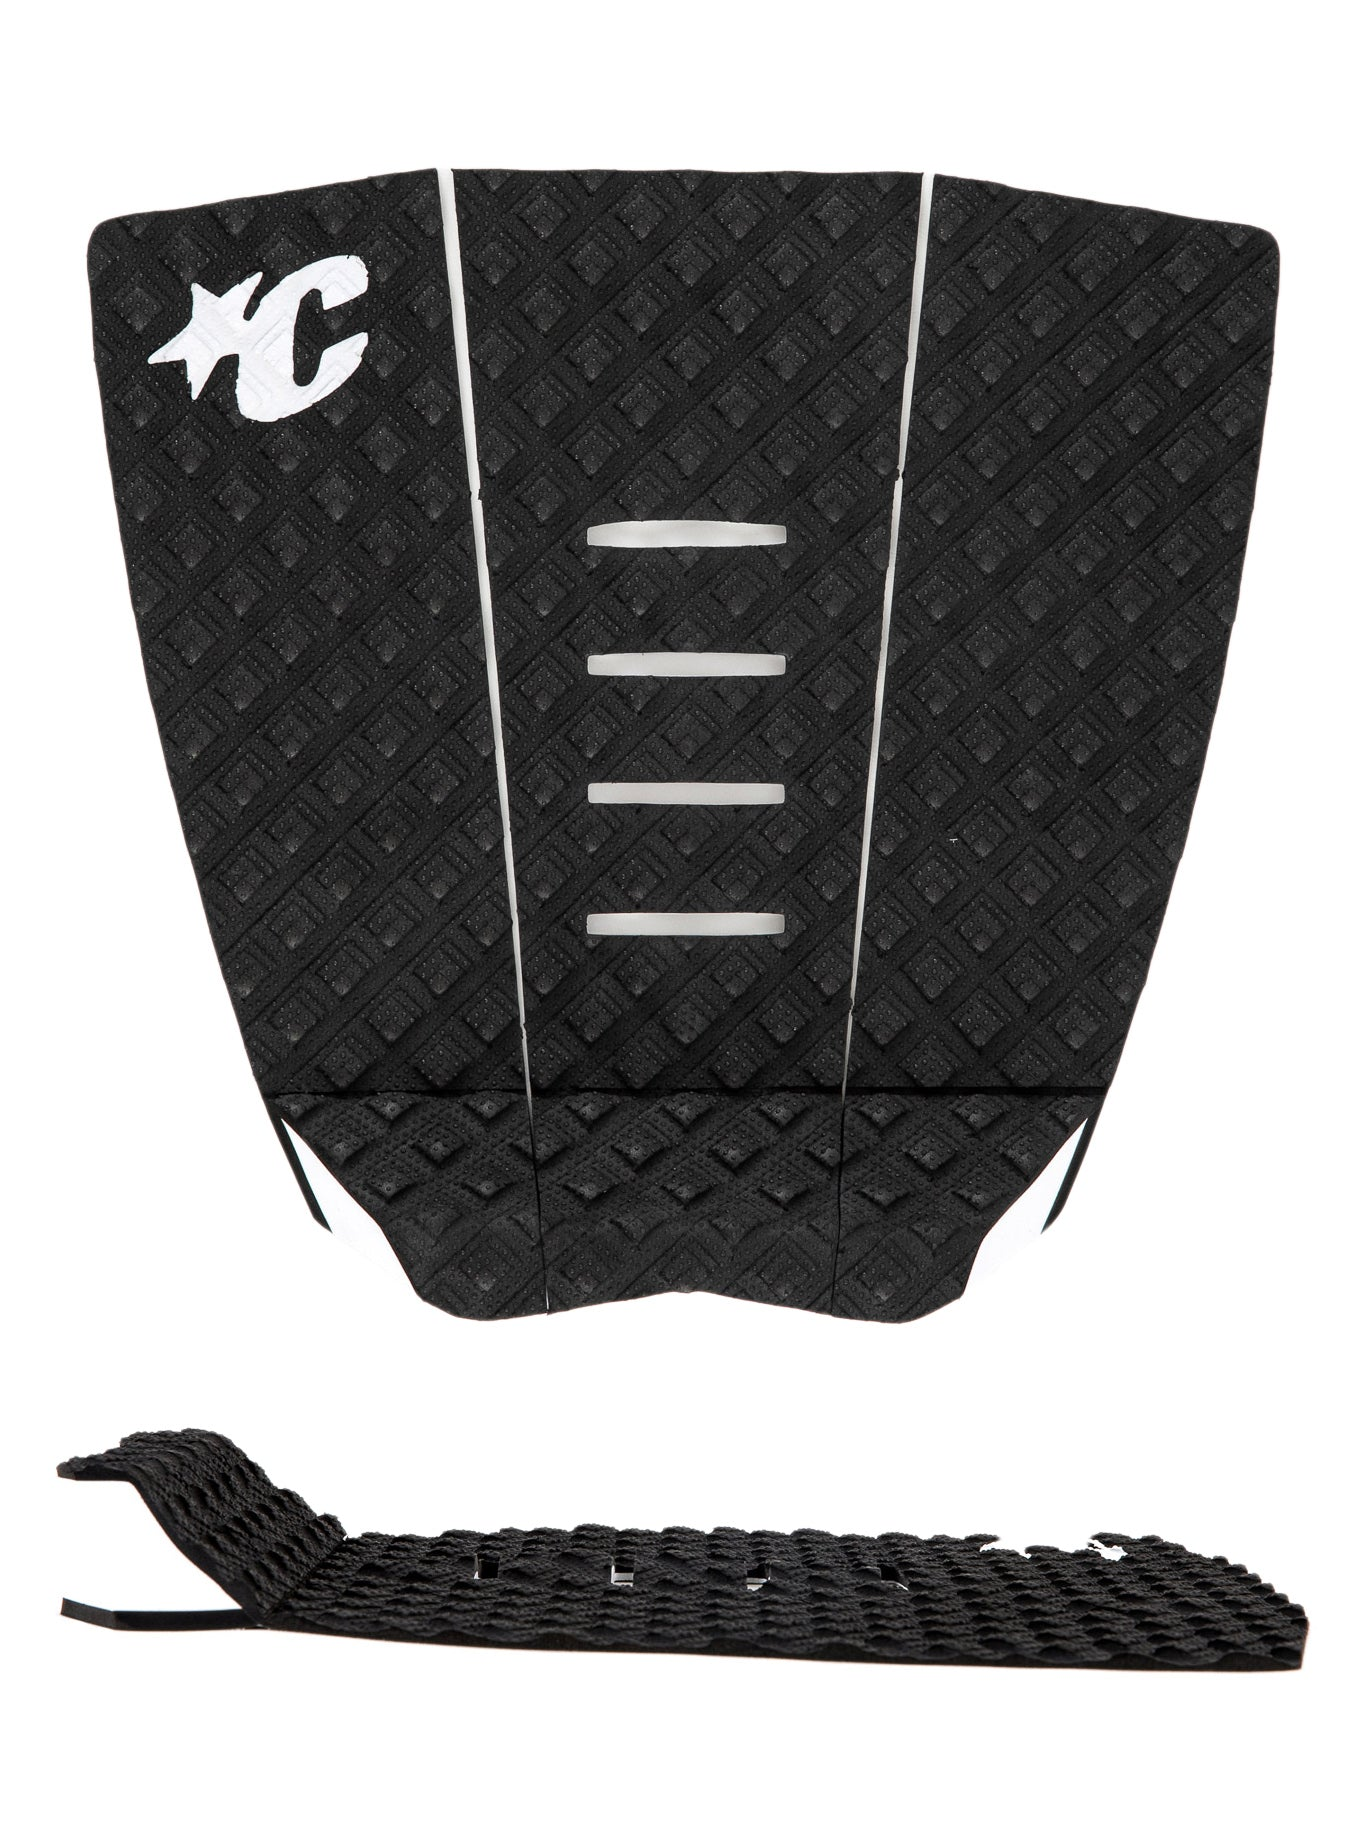 Image of Creatures Of Leisure Creatures Of Leisure Jack Freestone Lite Traction Pad - Black